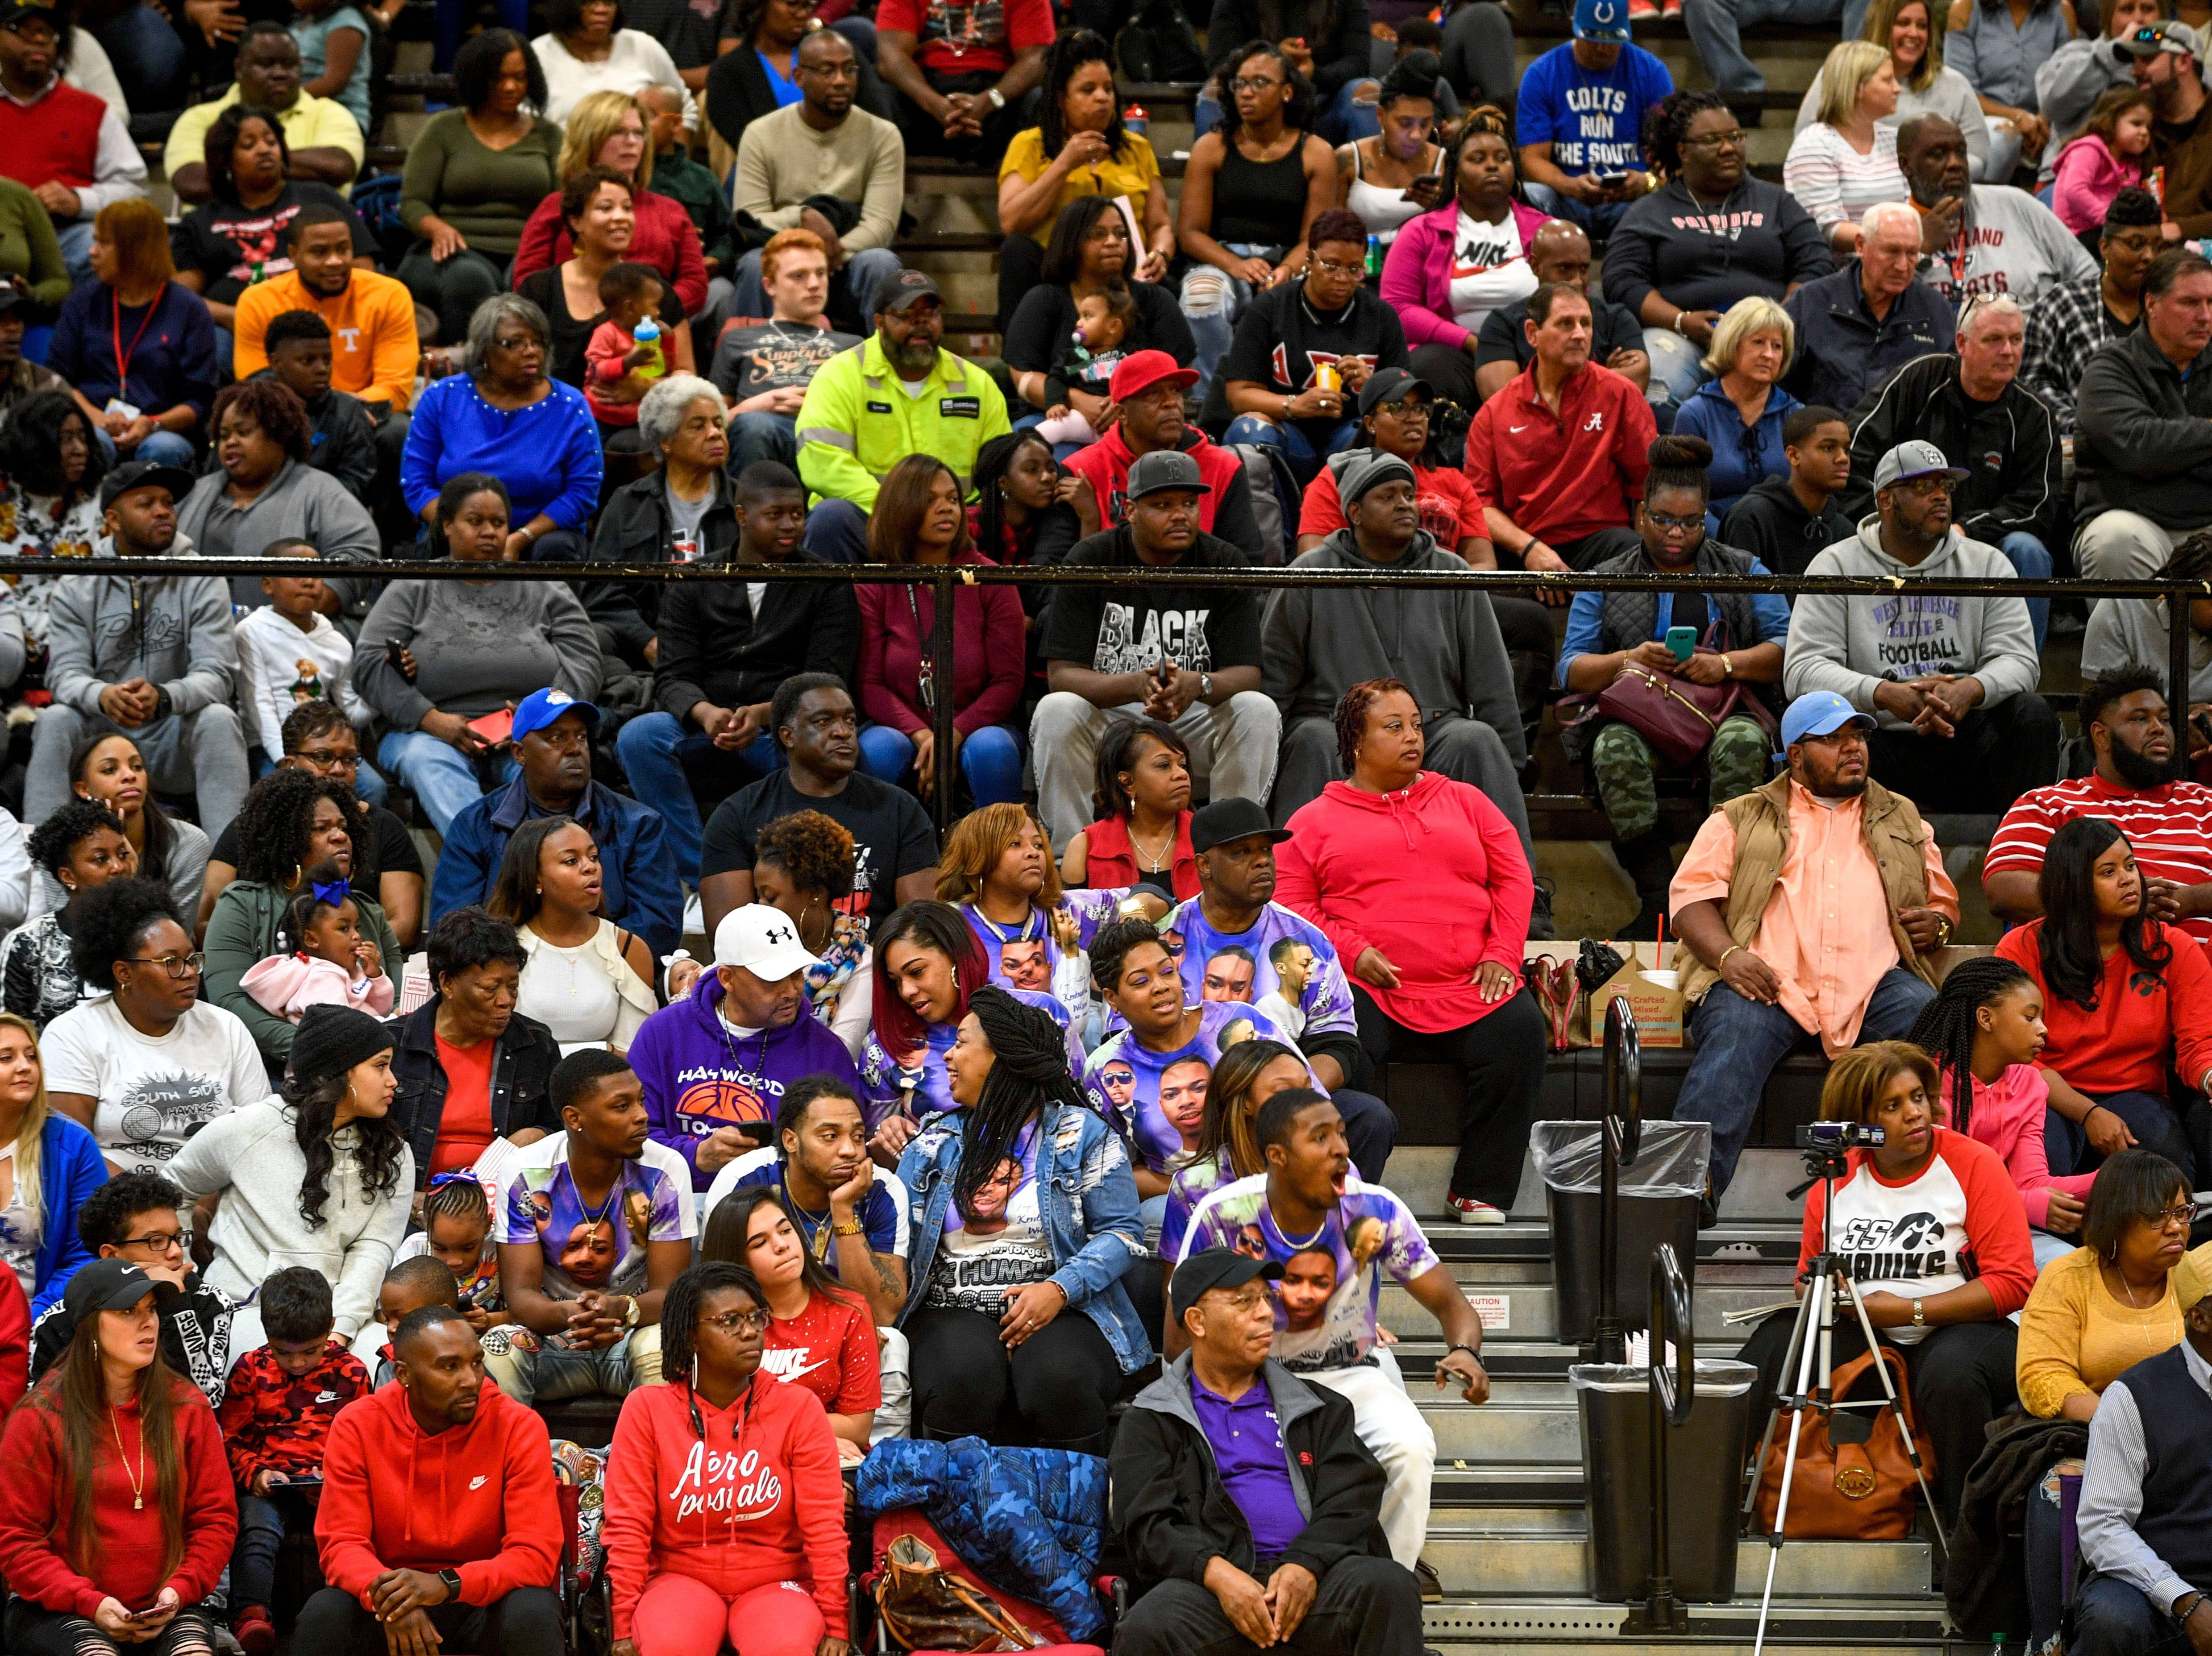 Kemmeka Currie sits with family and friends wearing t-shirts honoring Currie's son Kentavious Wilson during a TSSAA basketball game between South Side and Haywood on the anniversary of Kentavious Wilson, a former Haywood player's, death at South Side High School in Jackson, Tenn., on Saturday, Jan. 5, 2019.